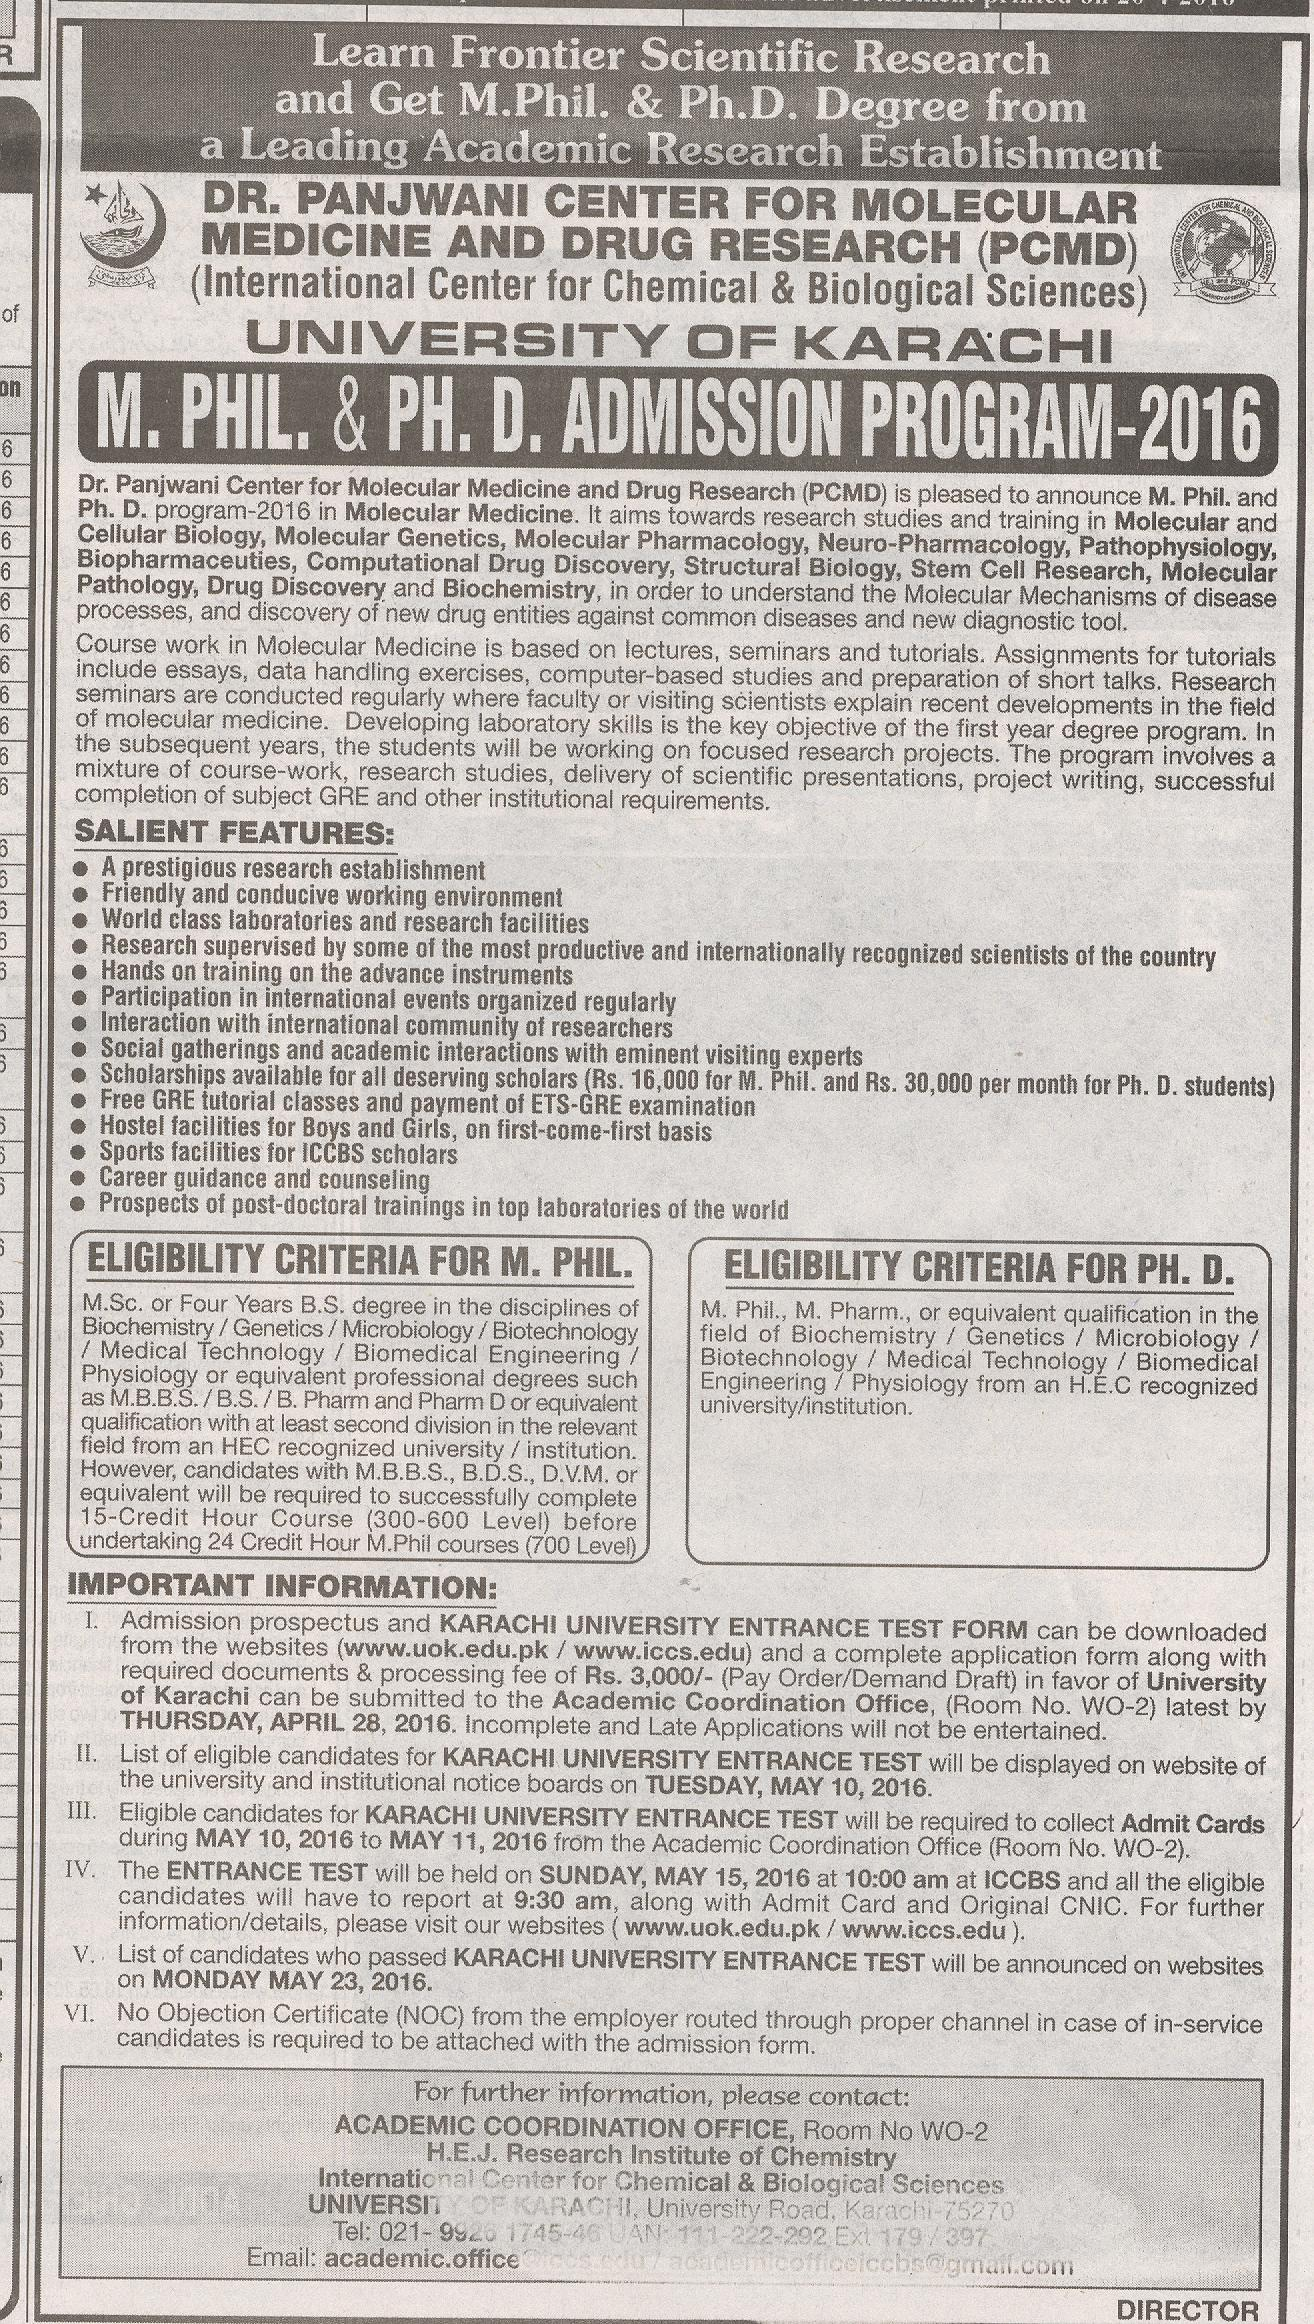 Dr Panjwani Center For Molecular Medicine and Drug Research admission 2016